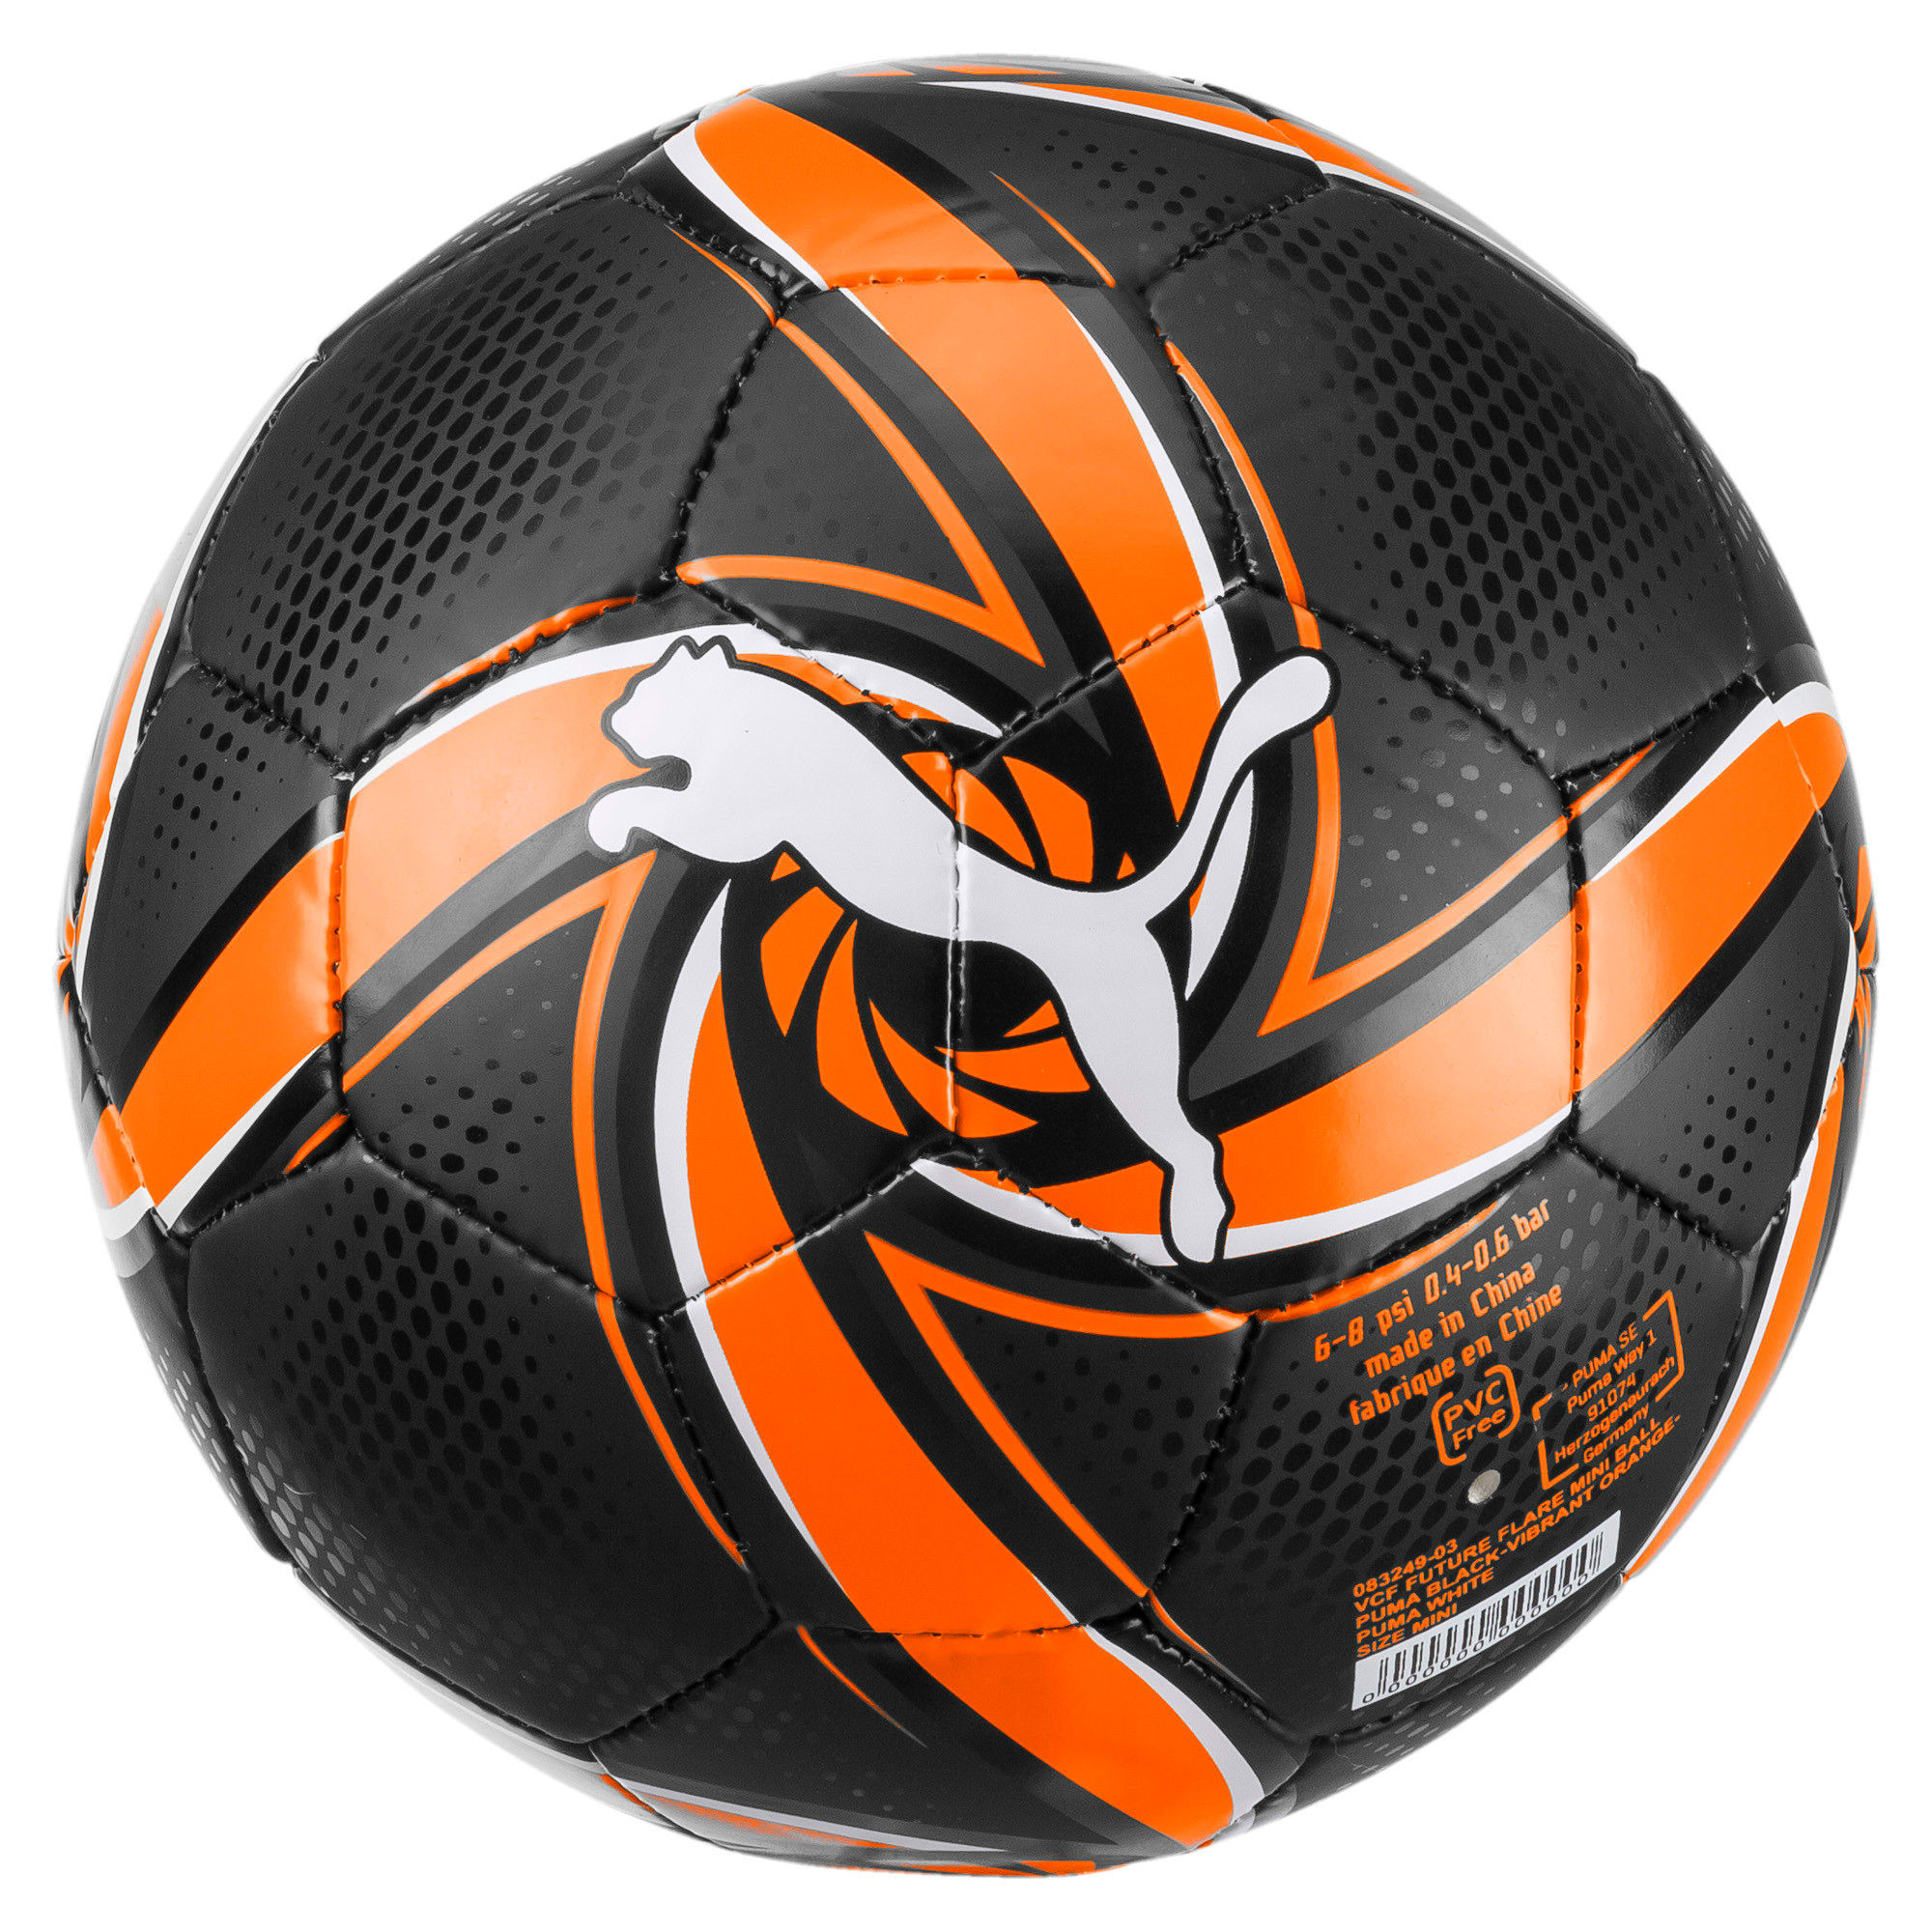 Thumbnail 1 of Valencia CF FUTURE Flare Mini Training Ball, Puma Black-Vibrant Orange, medium